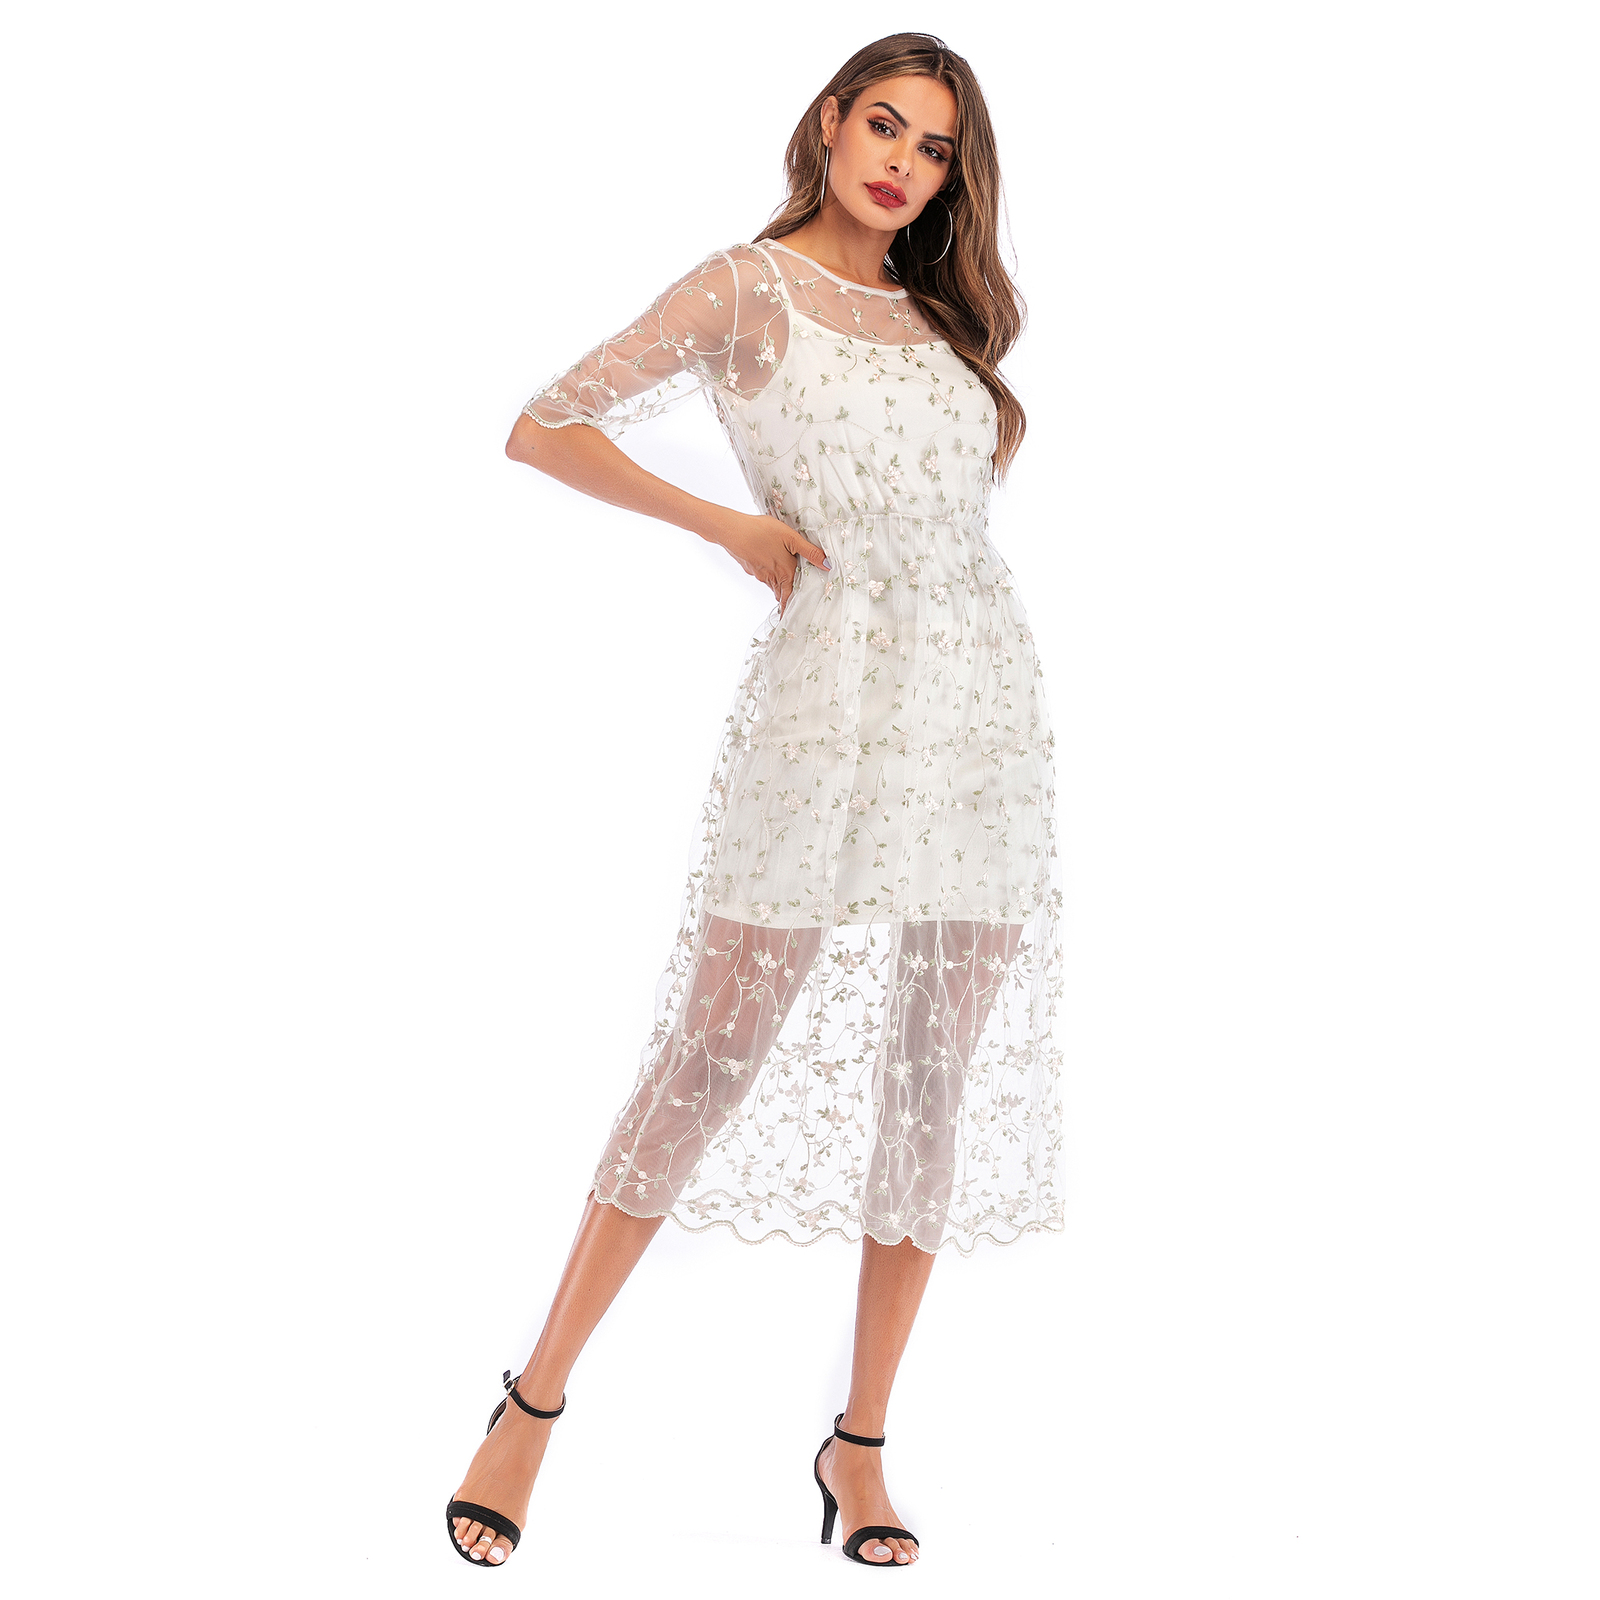 New Women's Dress Fresh Casual Floral Embroidery Two-piece MIDI Dress with Mesh  - $31.20